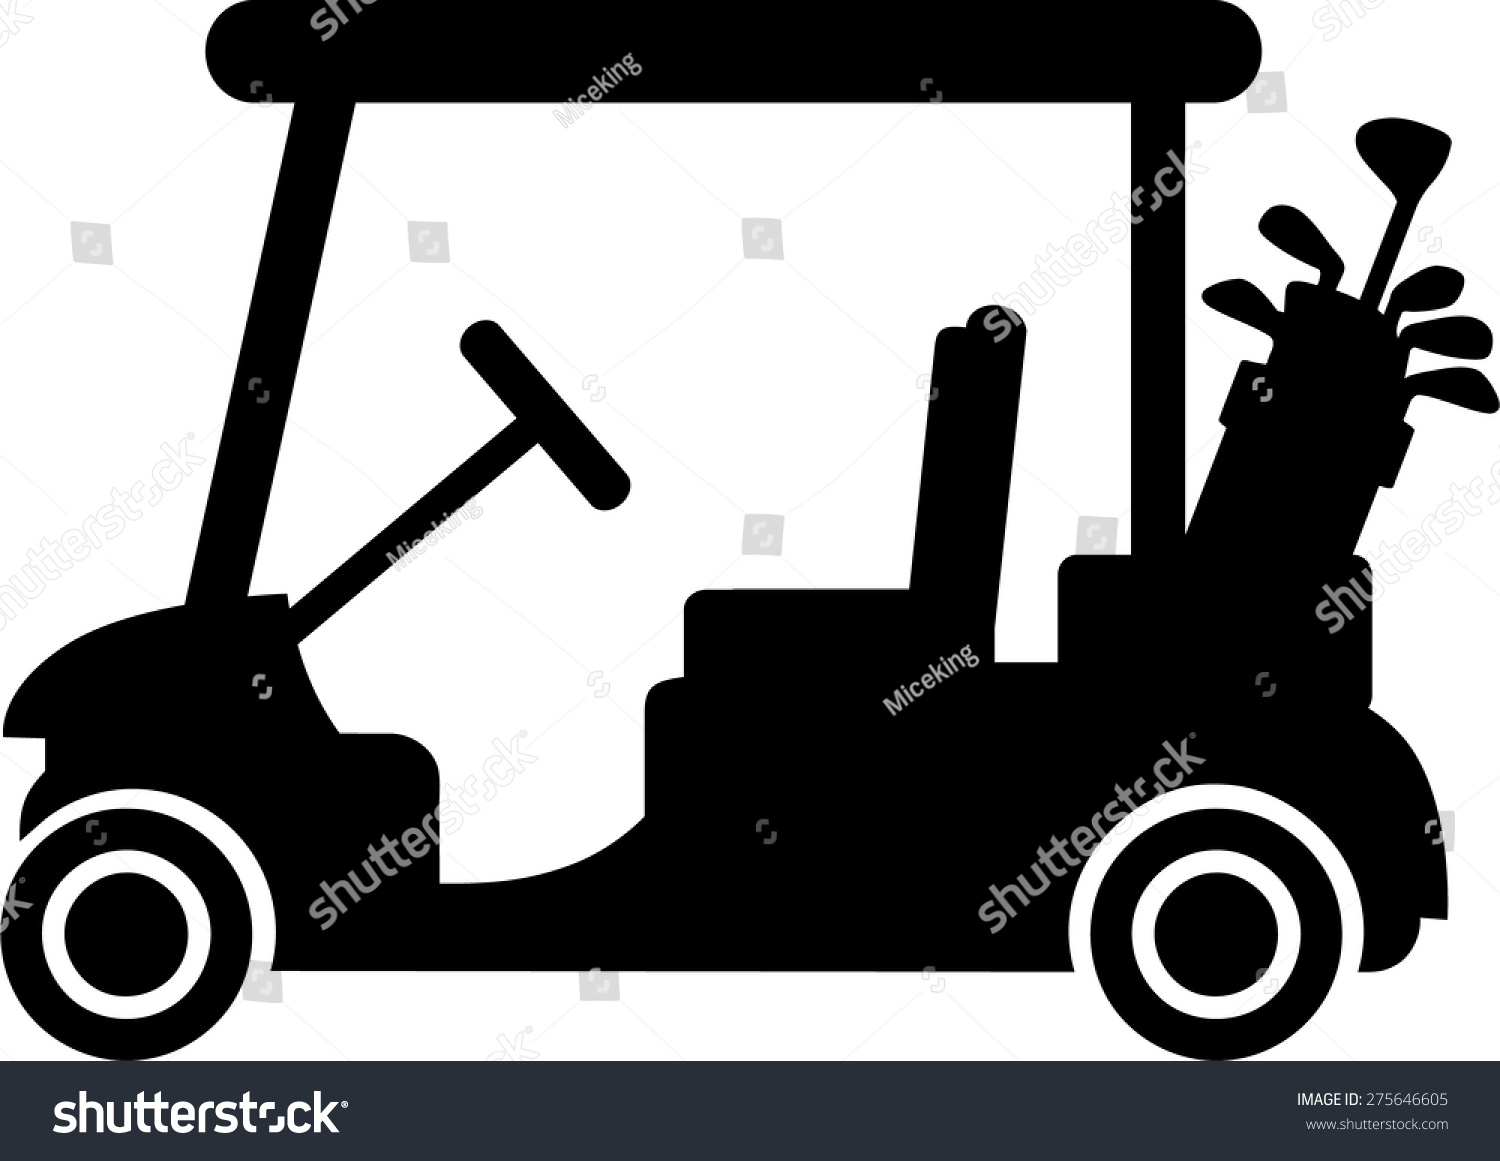 golf cart size 38 kb from transportation. golf cart coral clip art ...